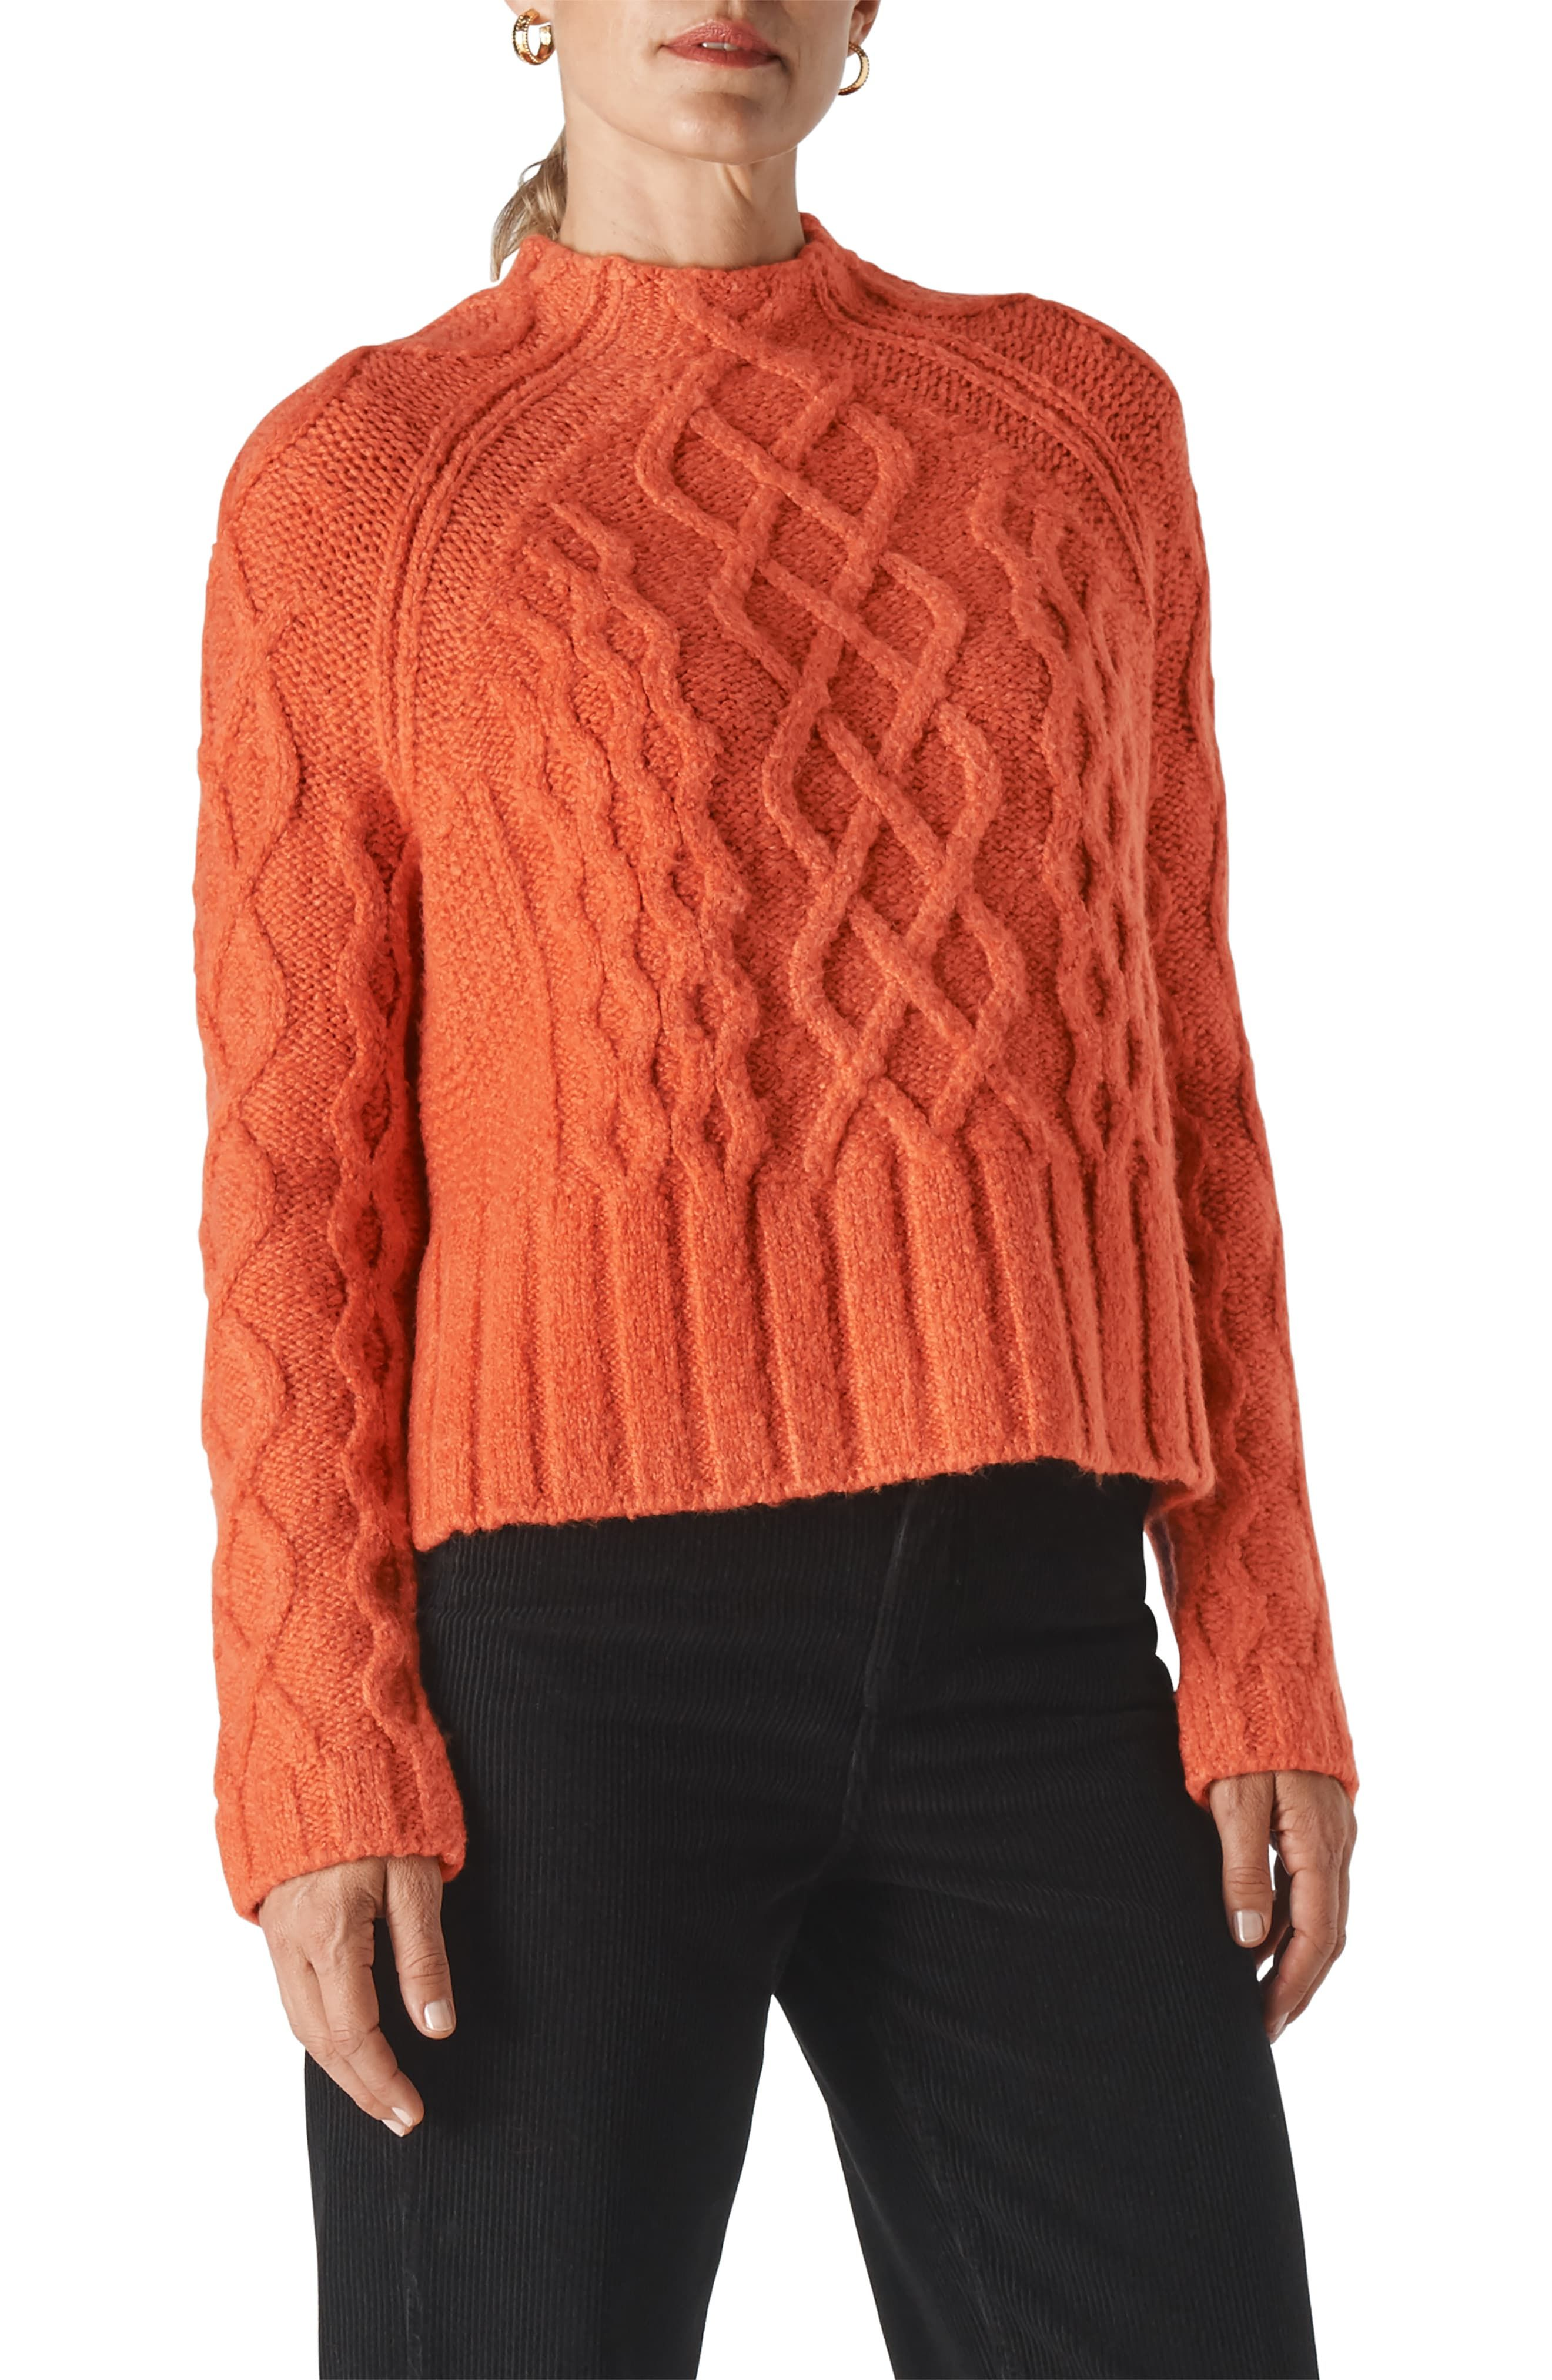 Woman/'s Cable Knitted Orange Jumper